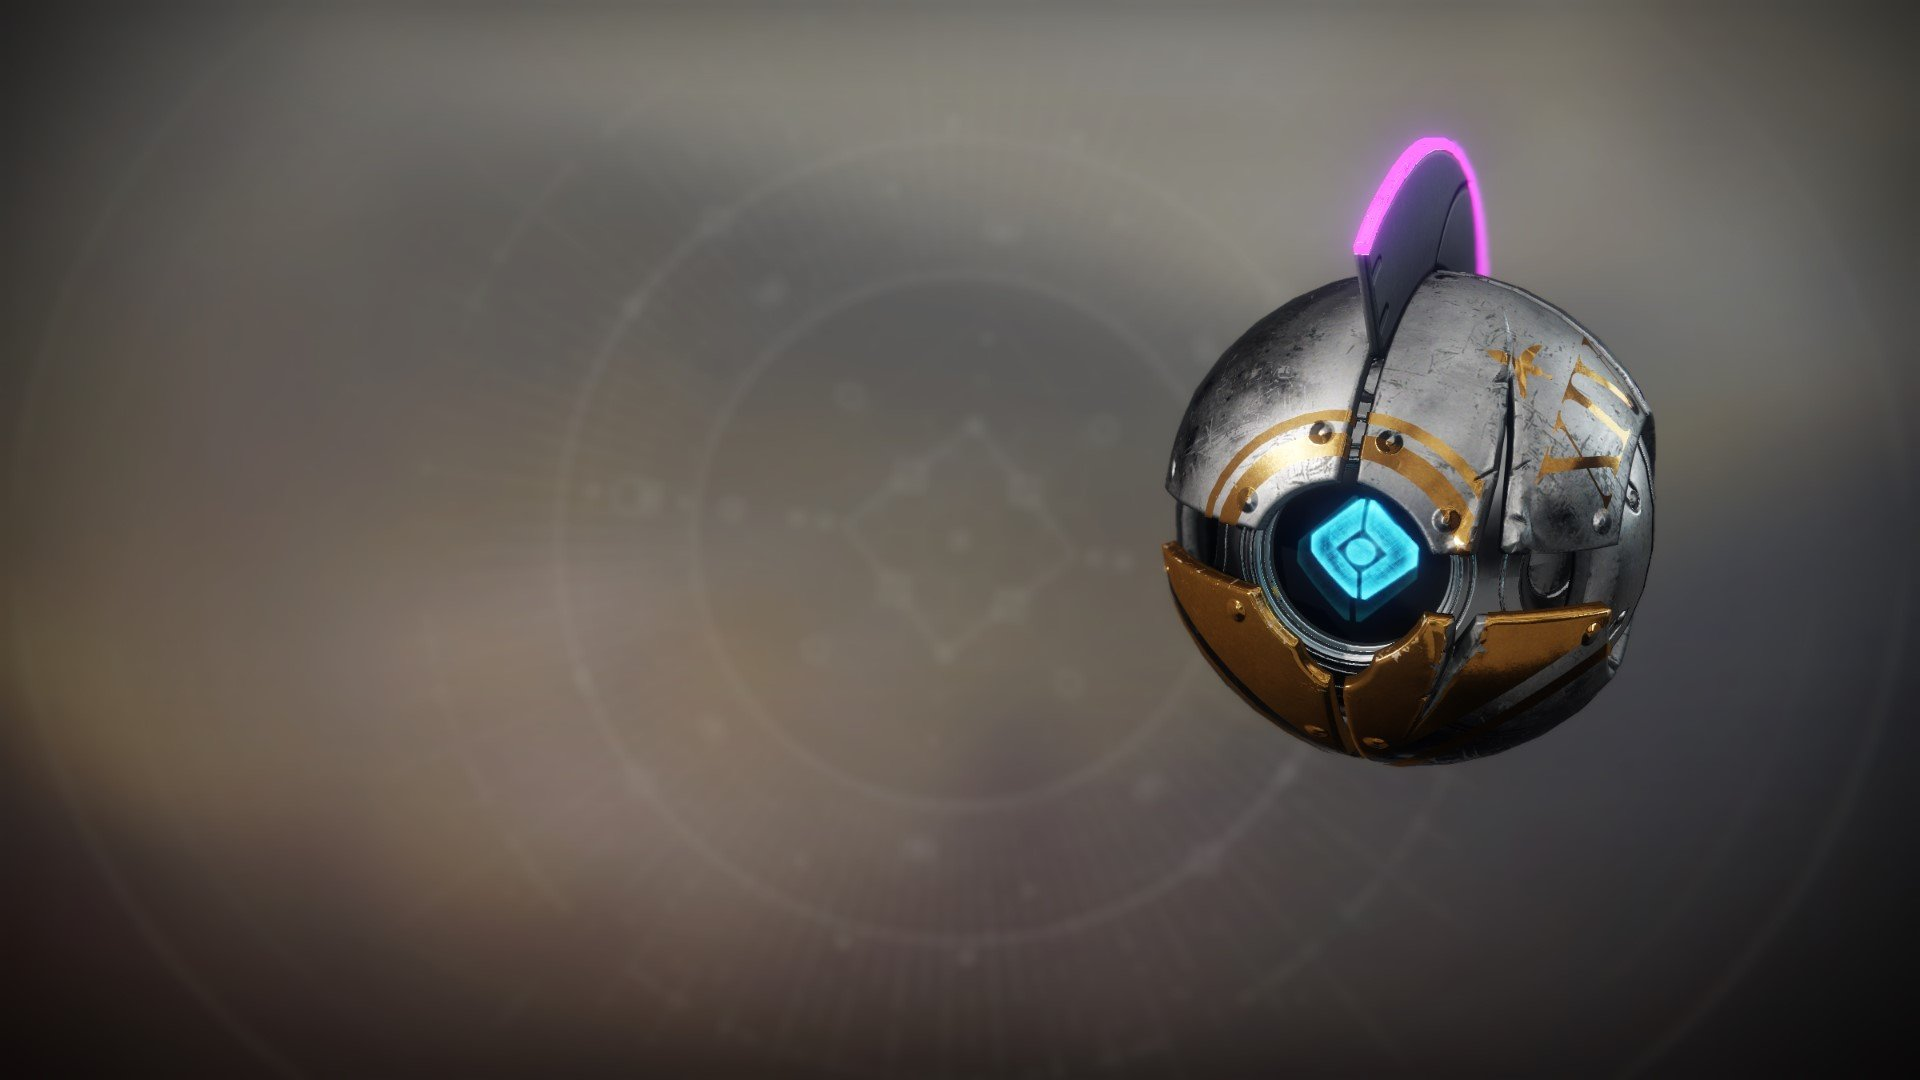 An in-game render of the Saintly Shell.